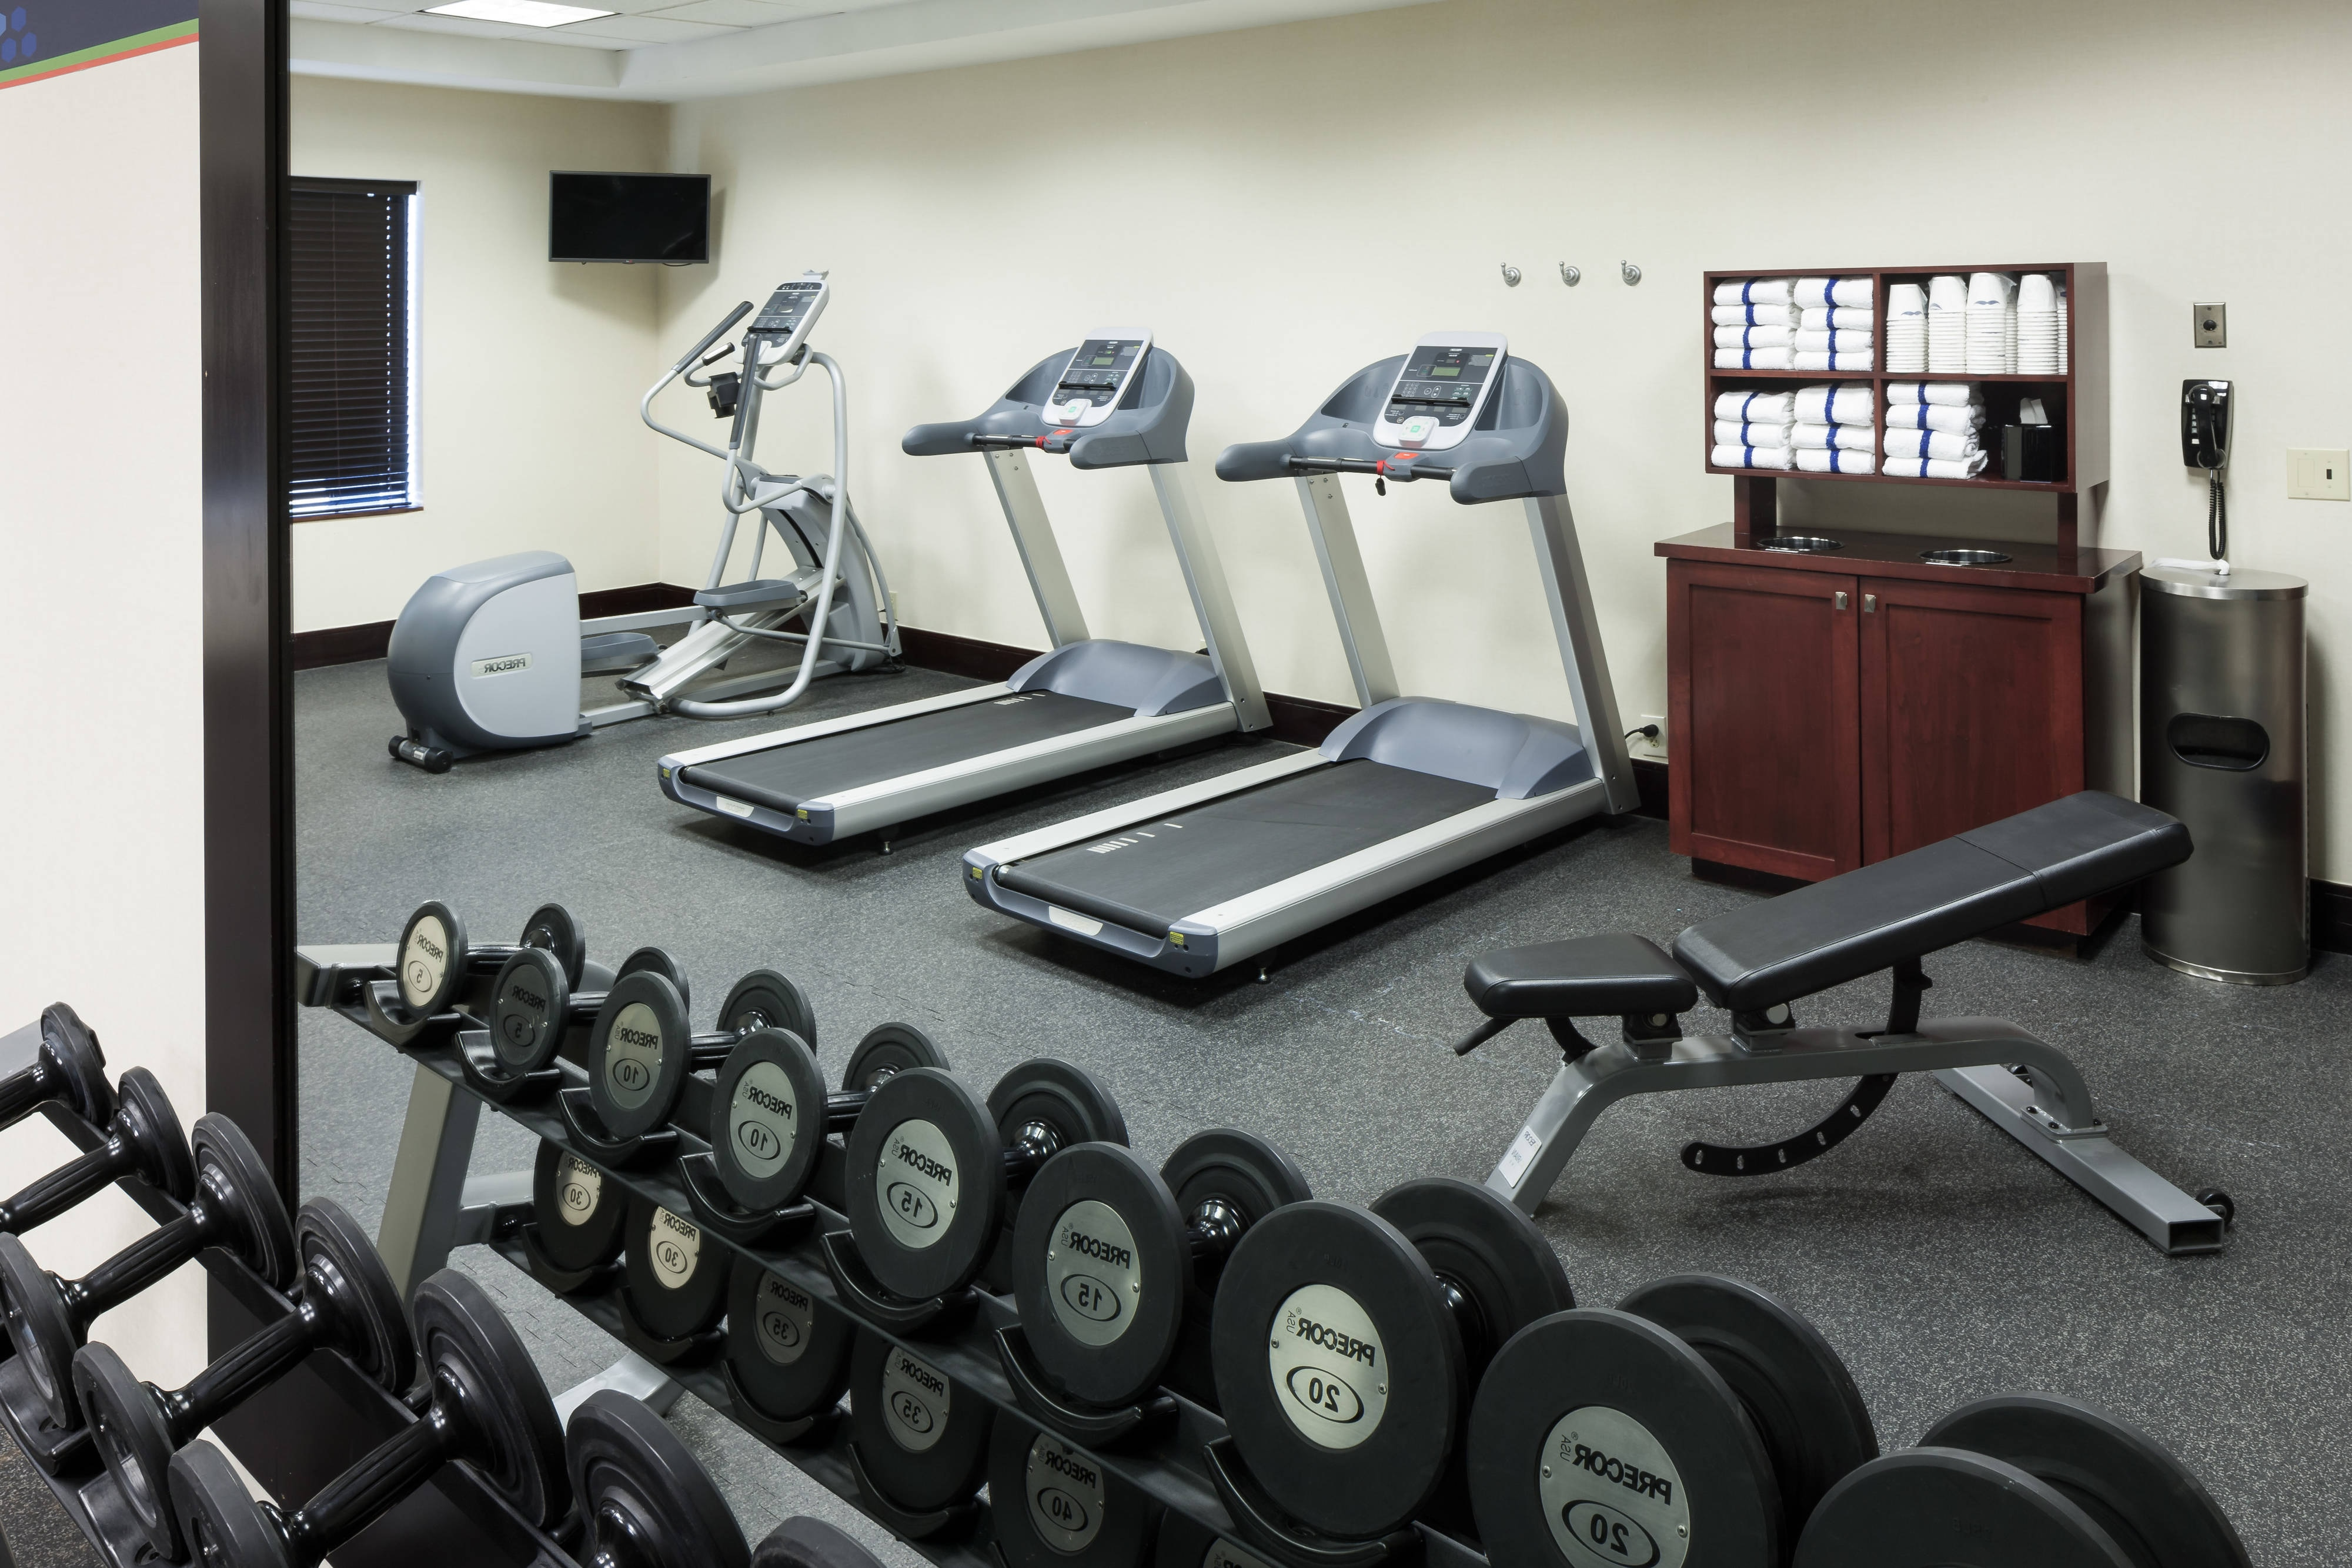 Residence Inn Lakeland exercise equipment